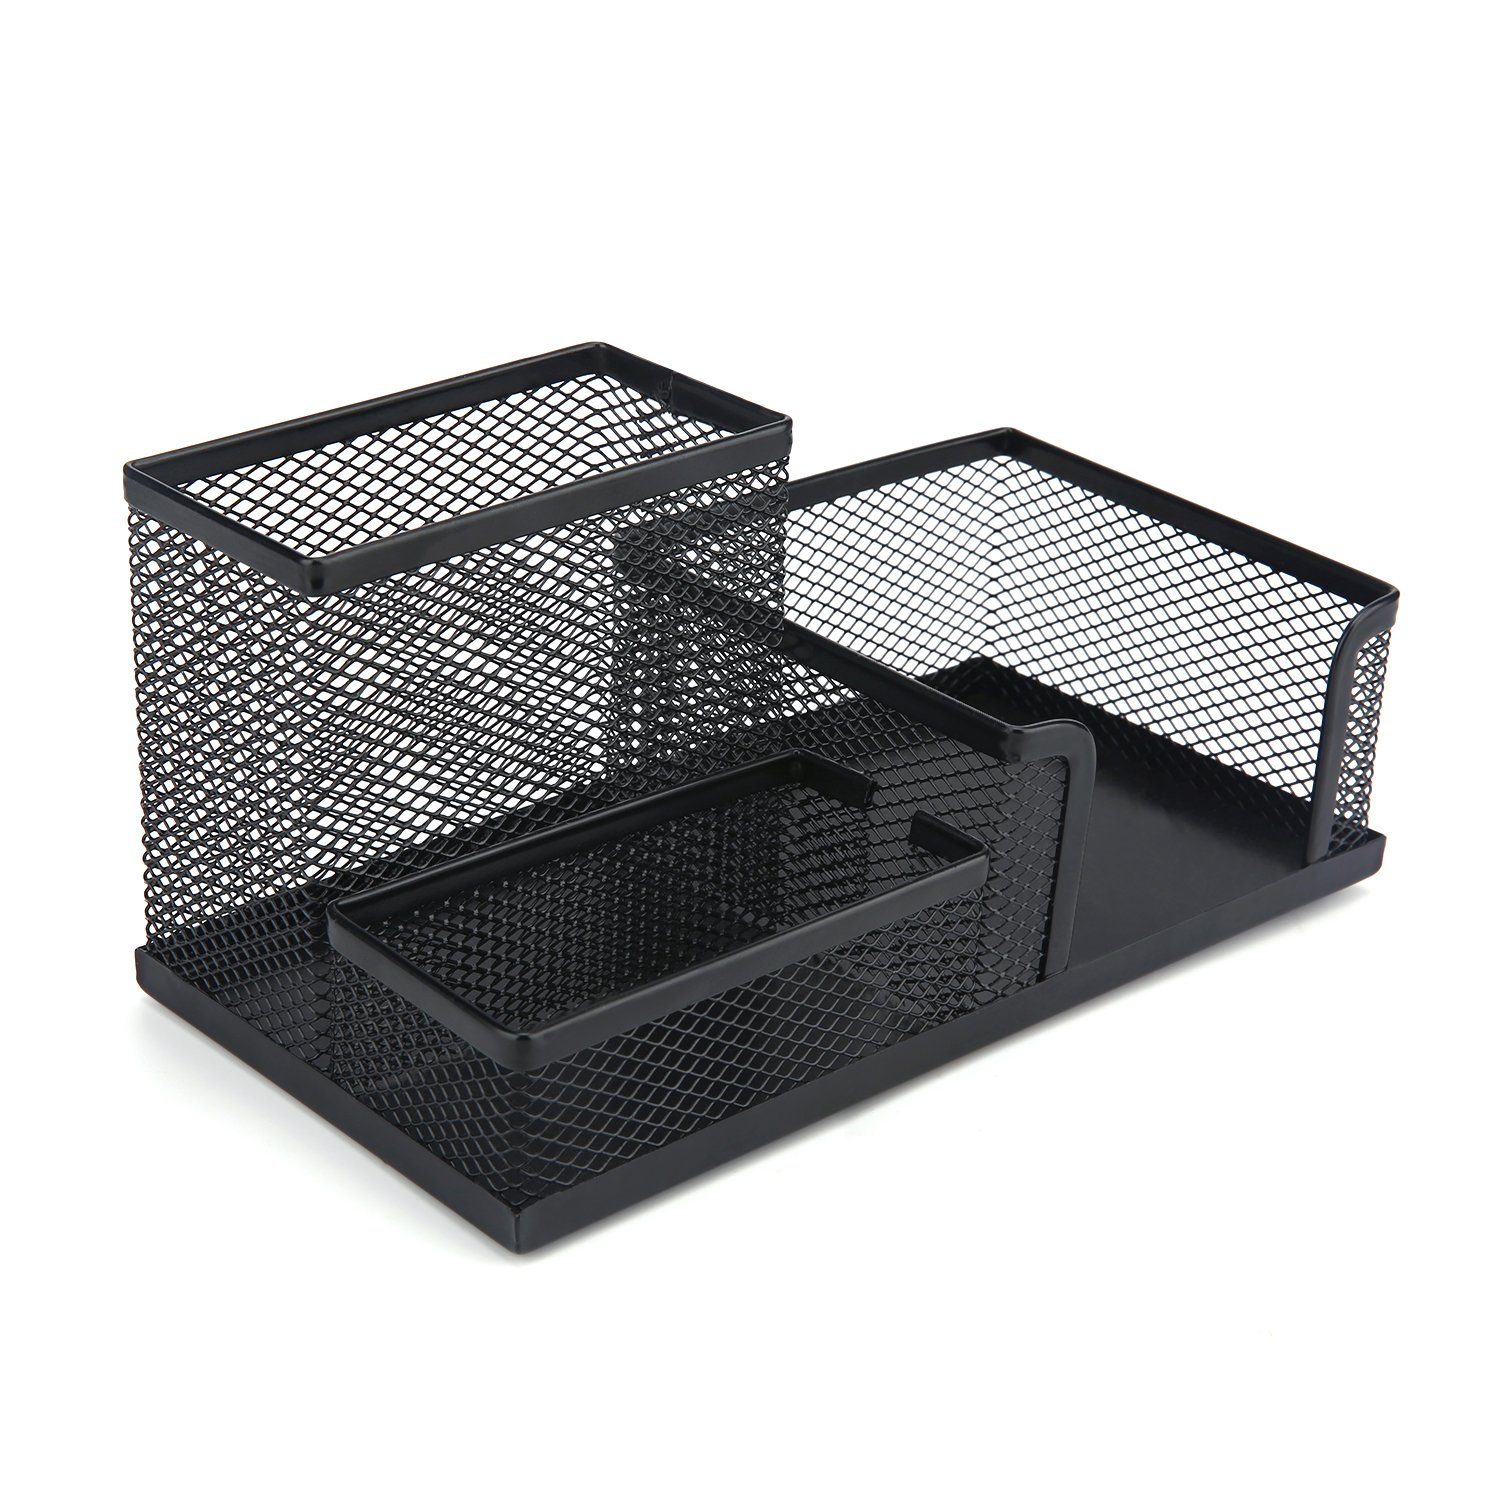 Mesh Office Desk Organizer Supplies Accessories with 3 Compartments for Desk Accessories, Perfect for Home, Students, or Office (Black)